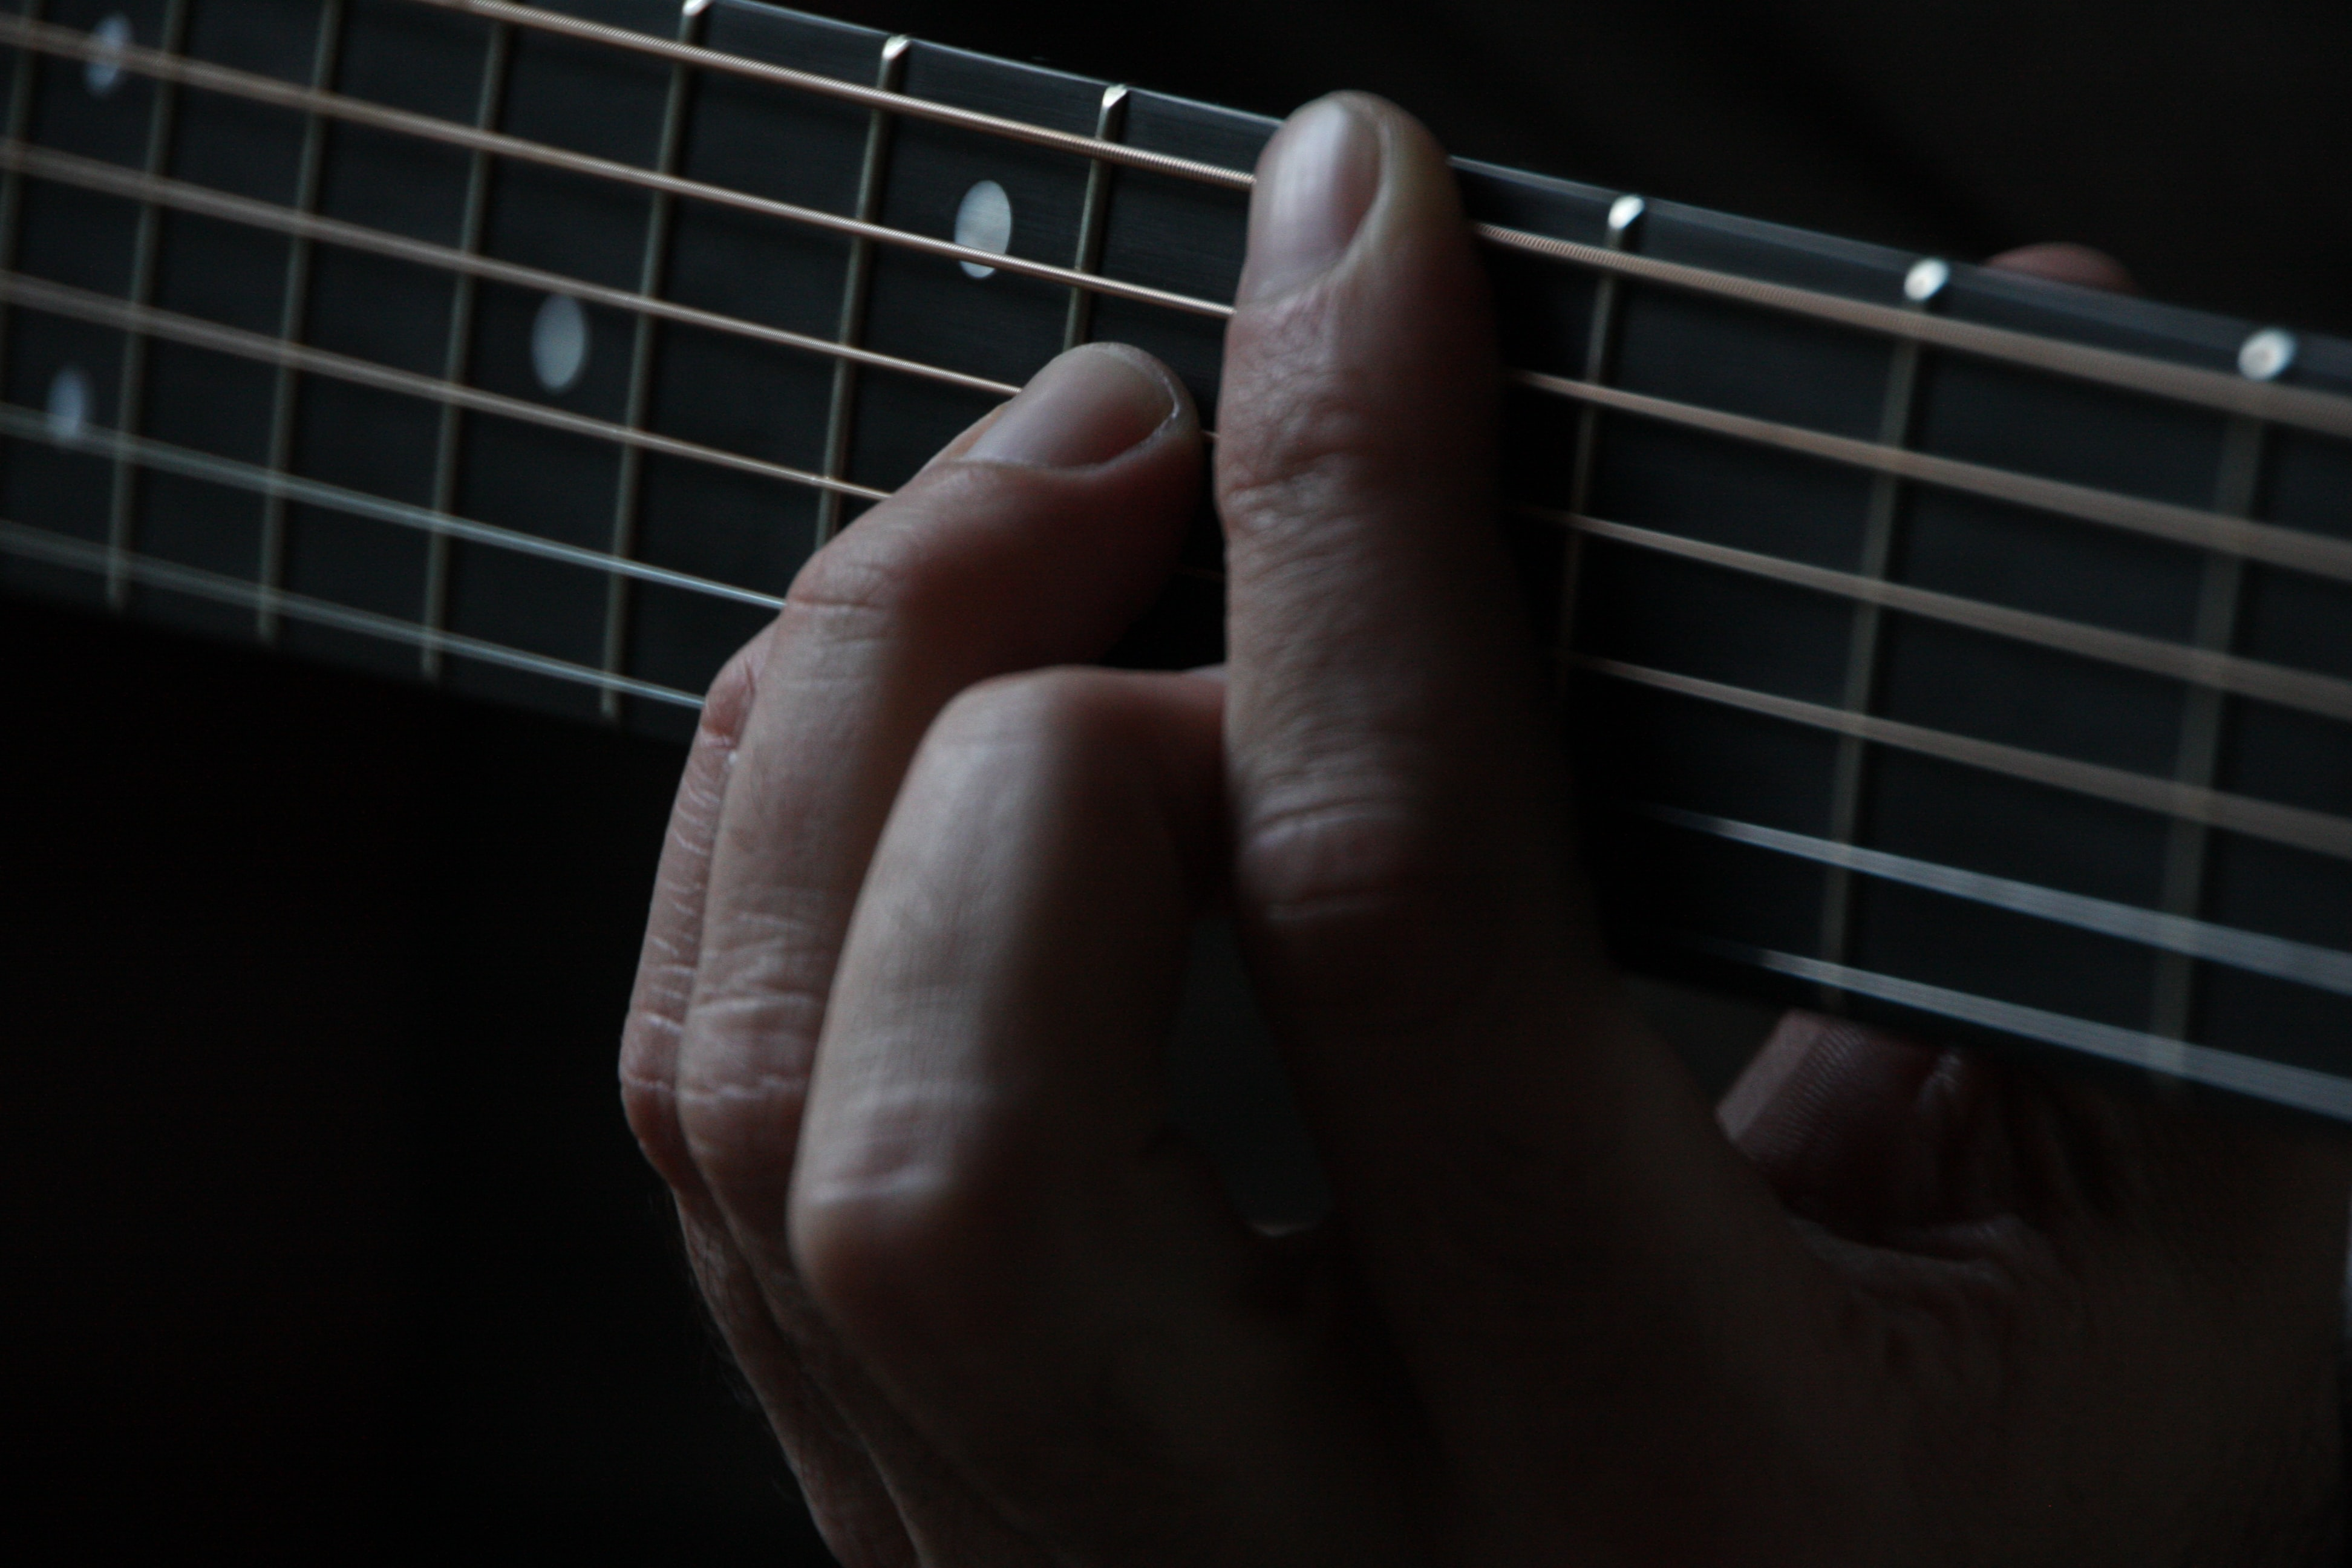 person using guitar